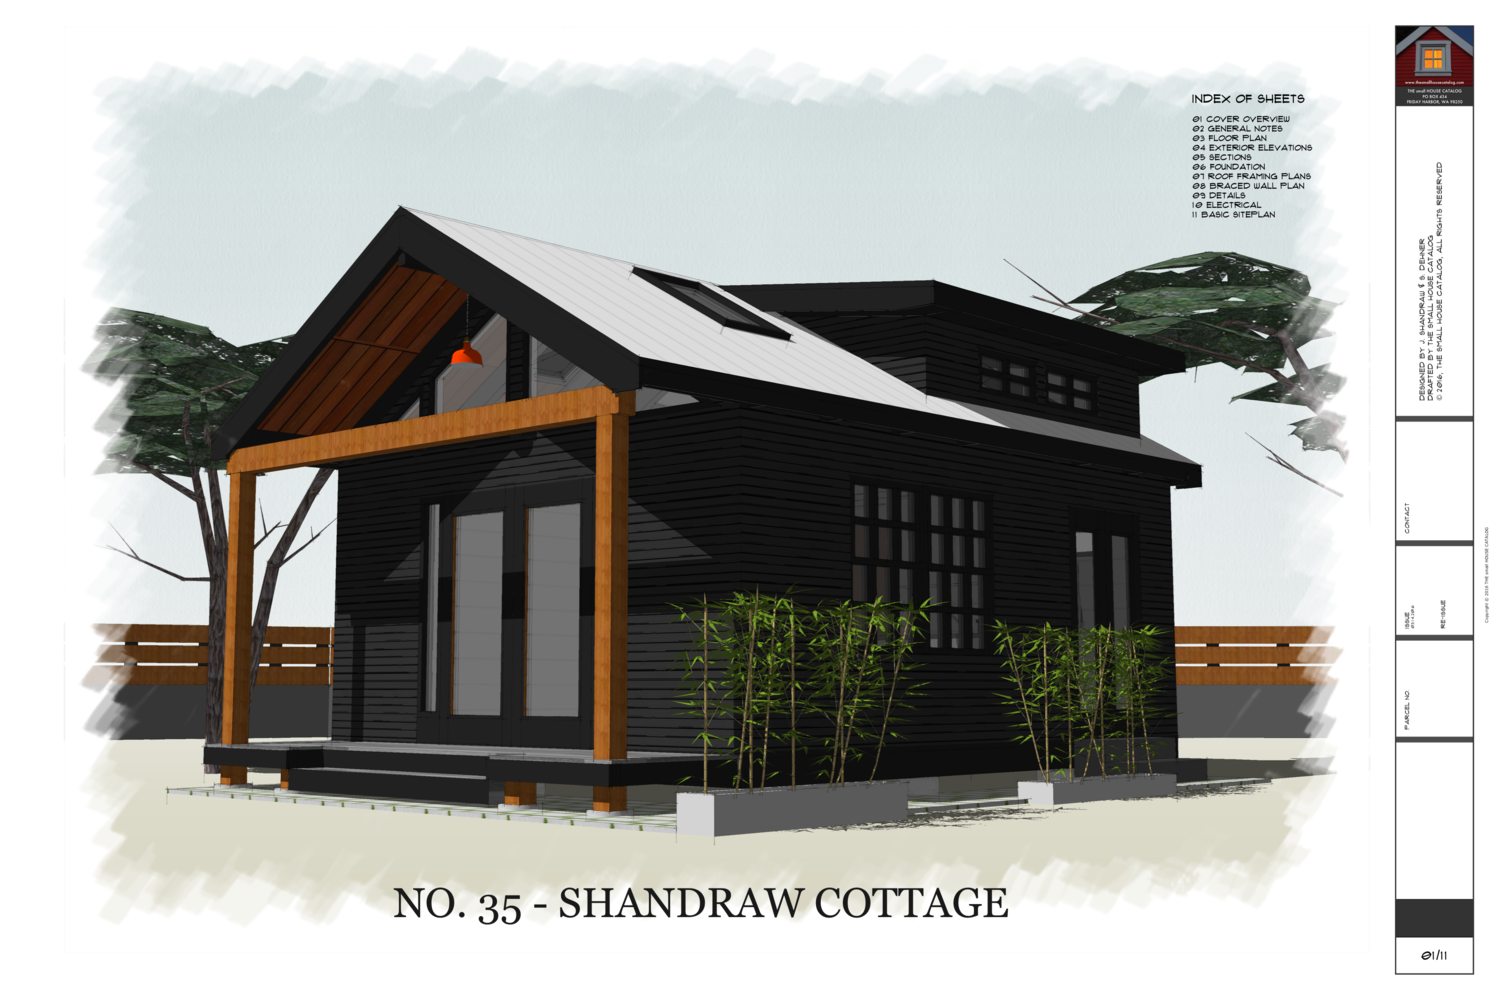 No. 35 - Shandraw Cottage (320 sq ft, 16' x 20', house with Porch,  Kitchenette and Bath) — THE small HOUSE CATALOG